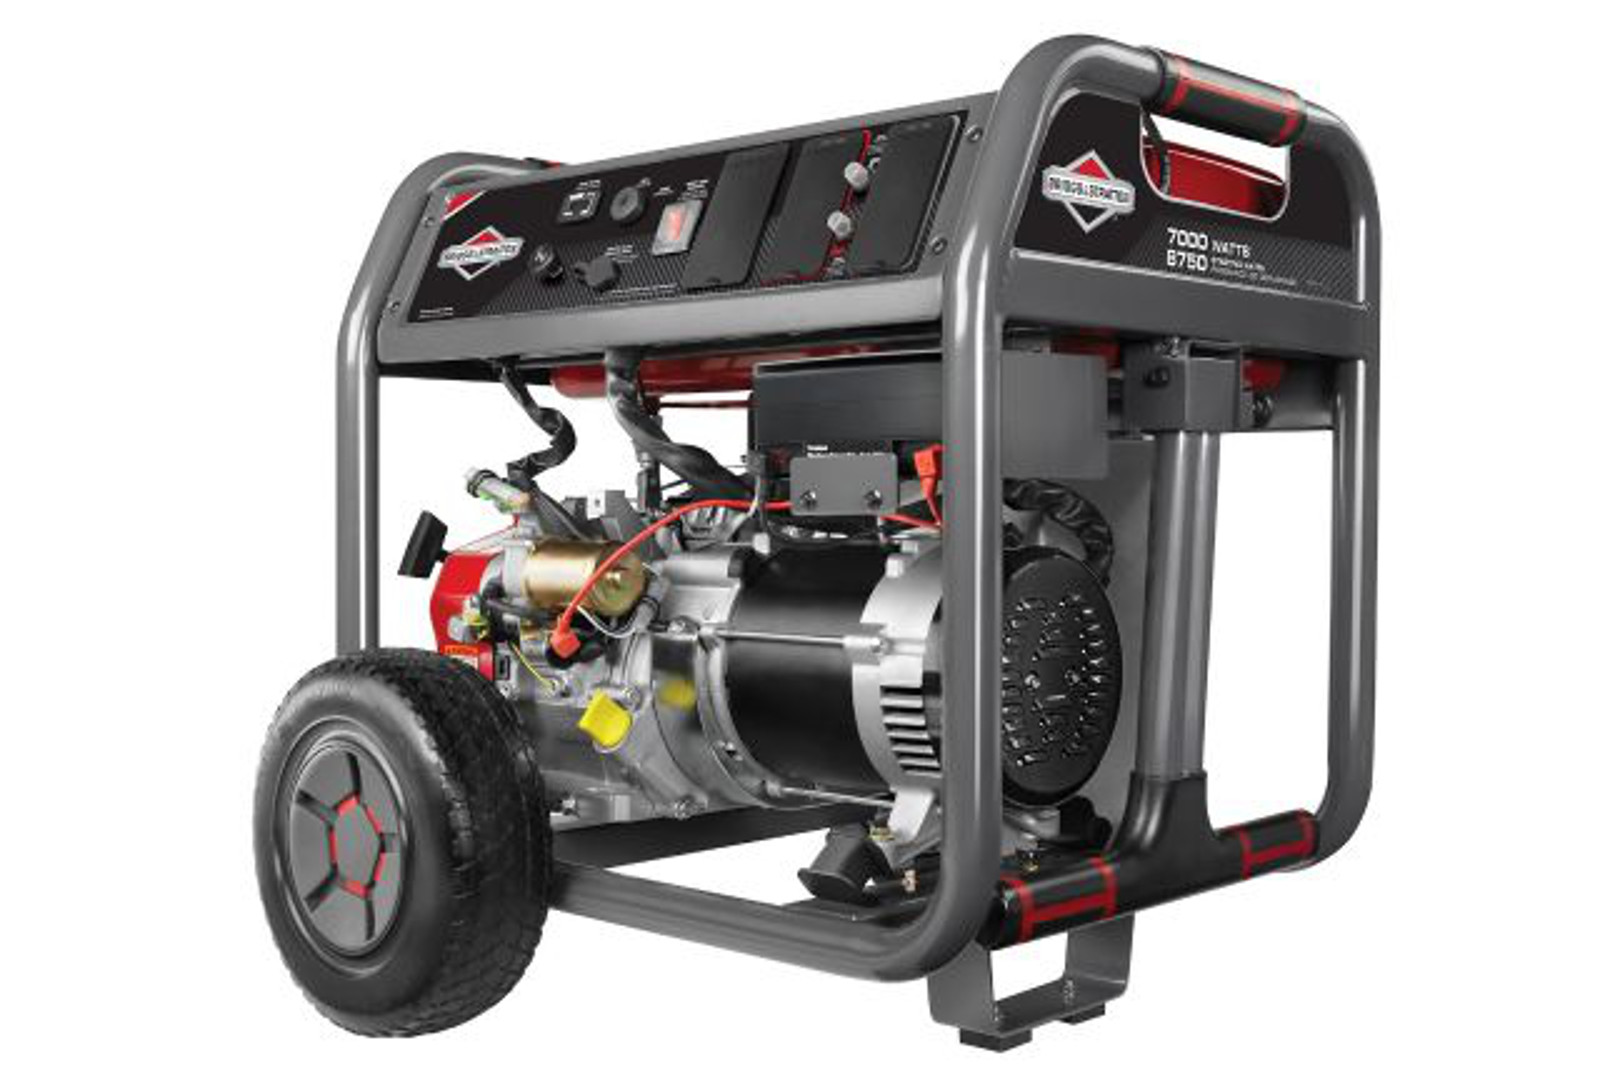 20+ Briggs And Stratton Elite Series Generator 5500 Pictures and